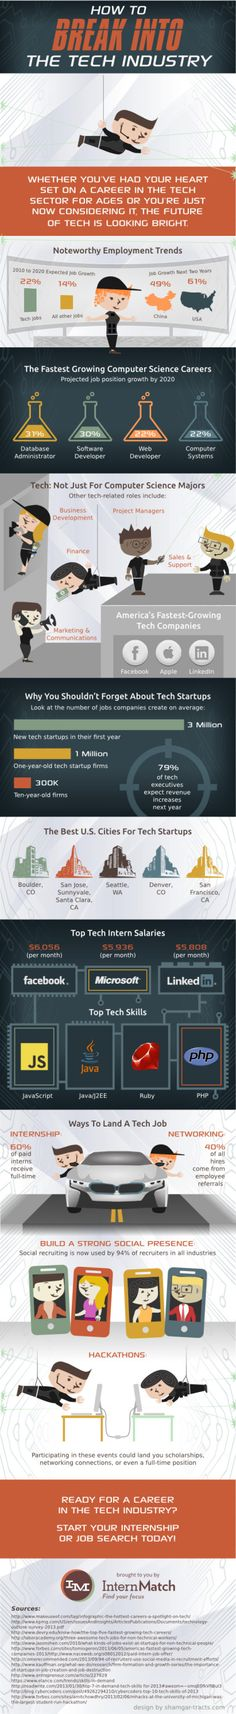 How to Break into the Tech Industry